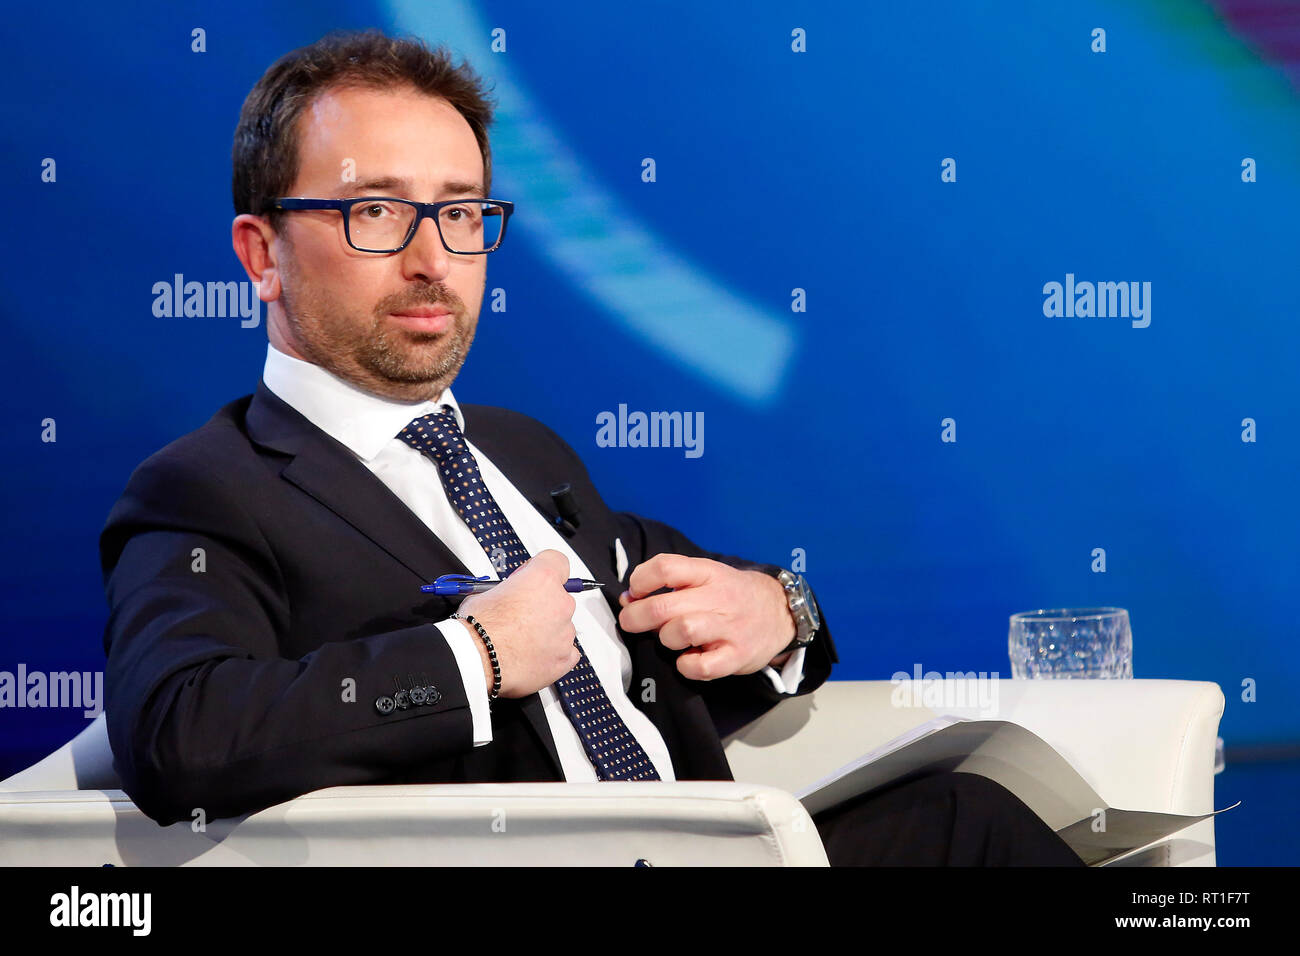 Alfonso Bonafede Rome February 27th 2019. The Italian Minister of Justice appears as a guest on the tv show Porta a Porta Foto Samantha Zucchi Insidefoto - Stock Image